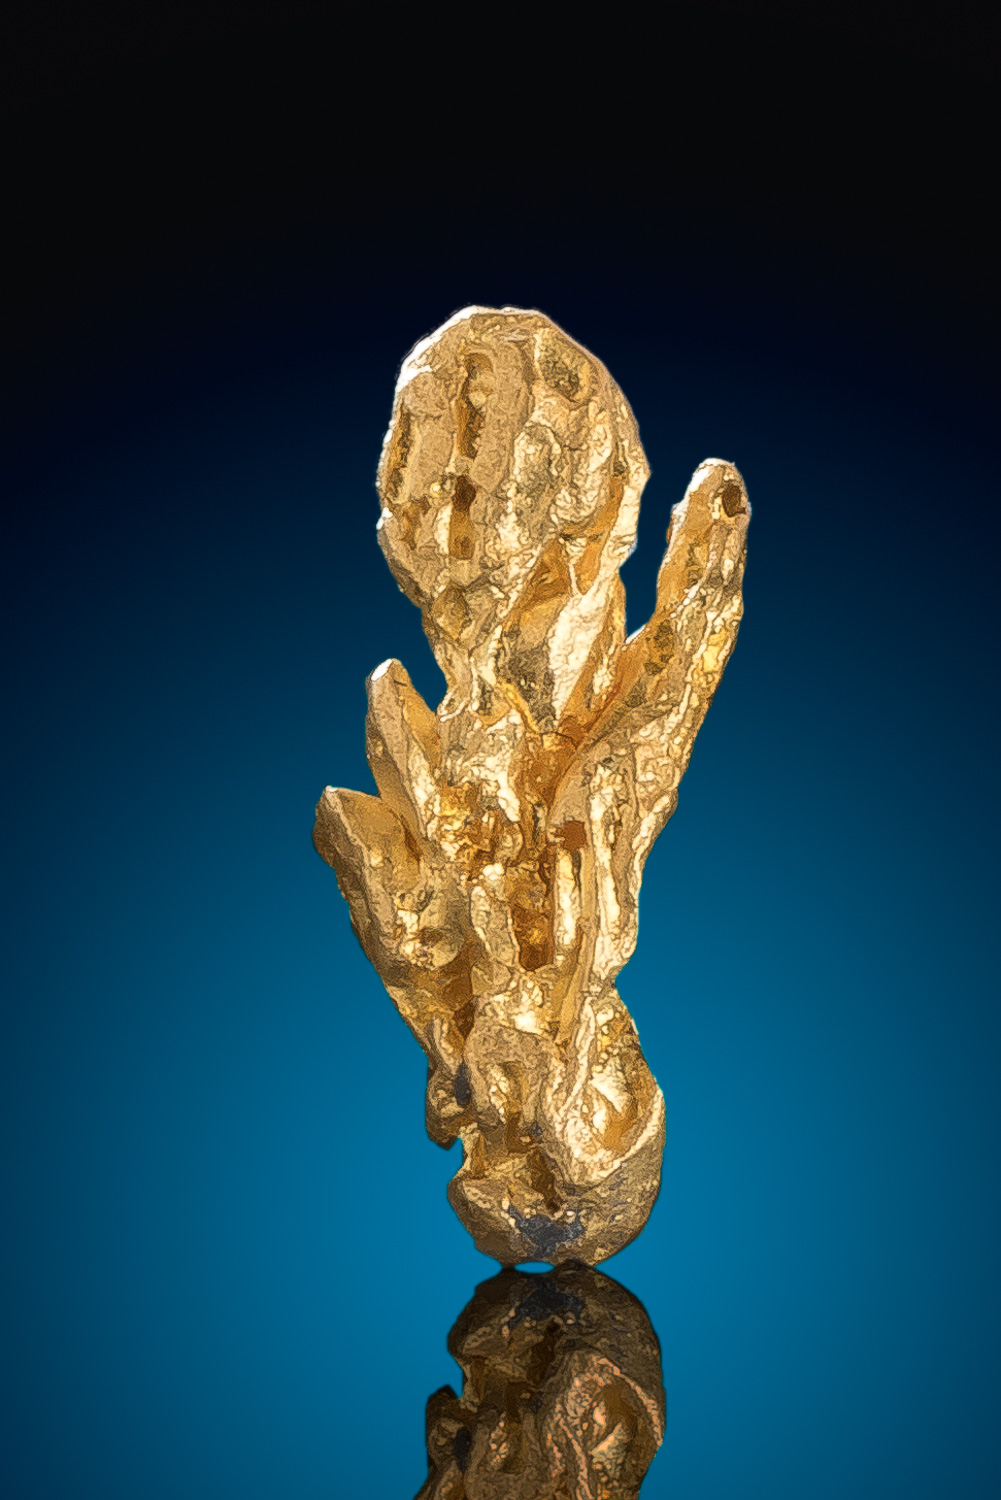 Elongated Brilliant Gold Nugget Crystal from venezuela